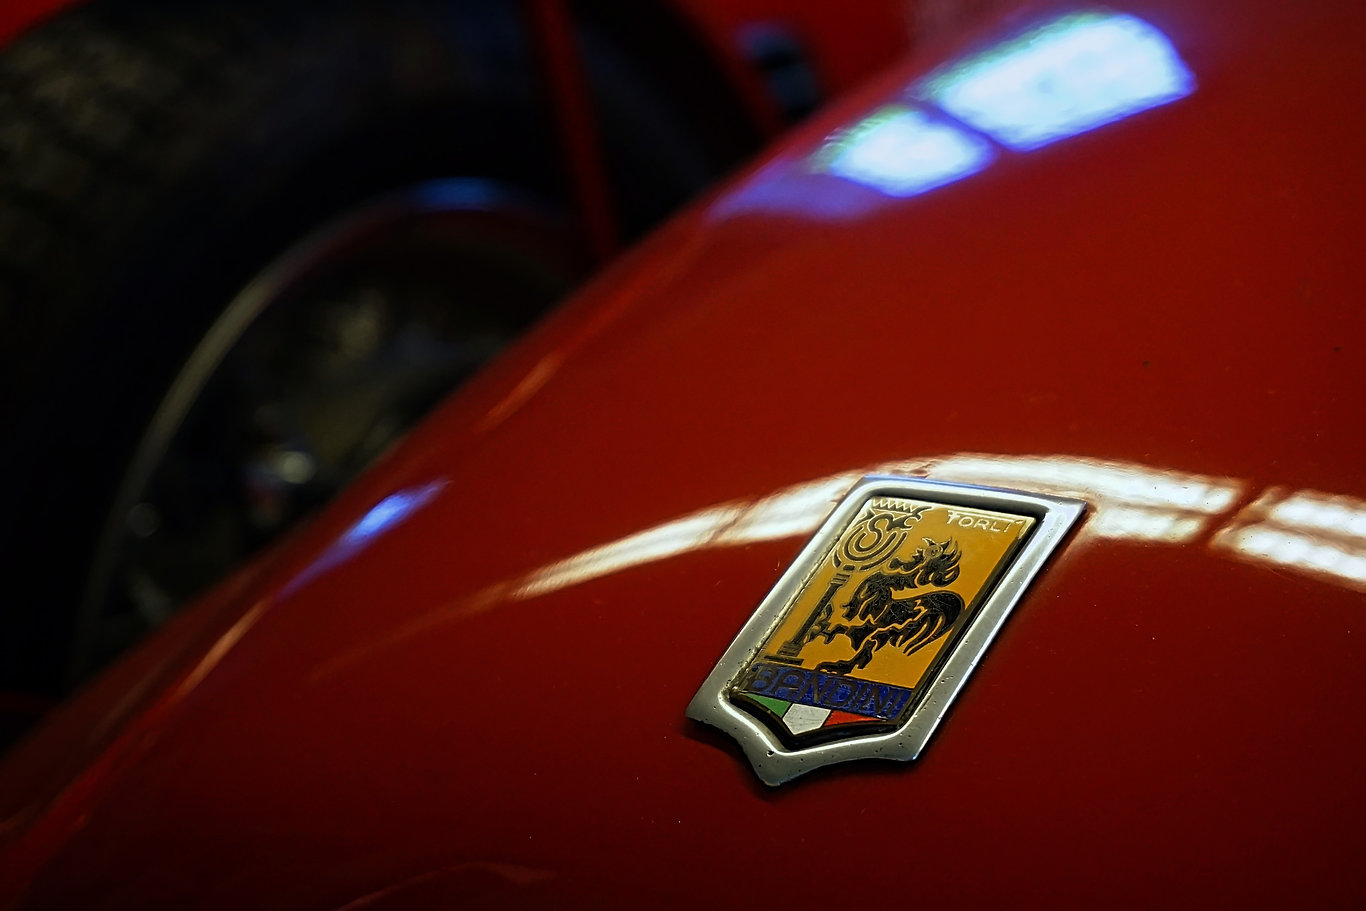 The Bandini badge design came from the s